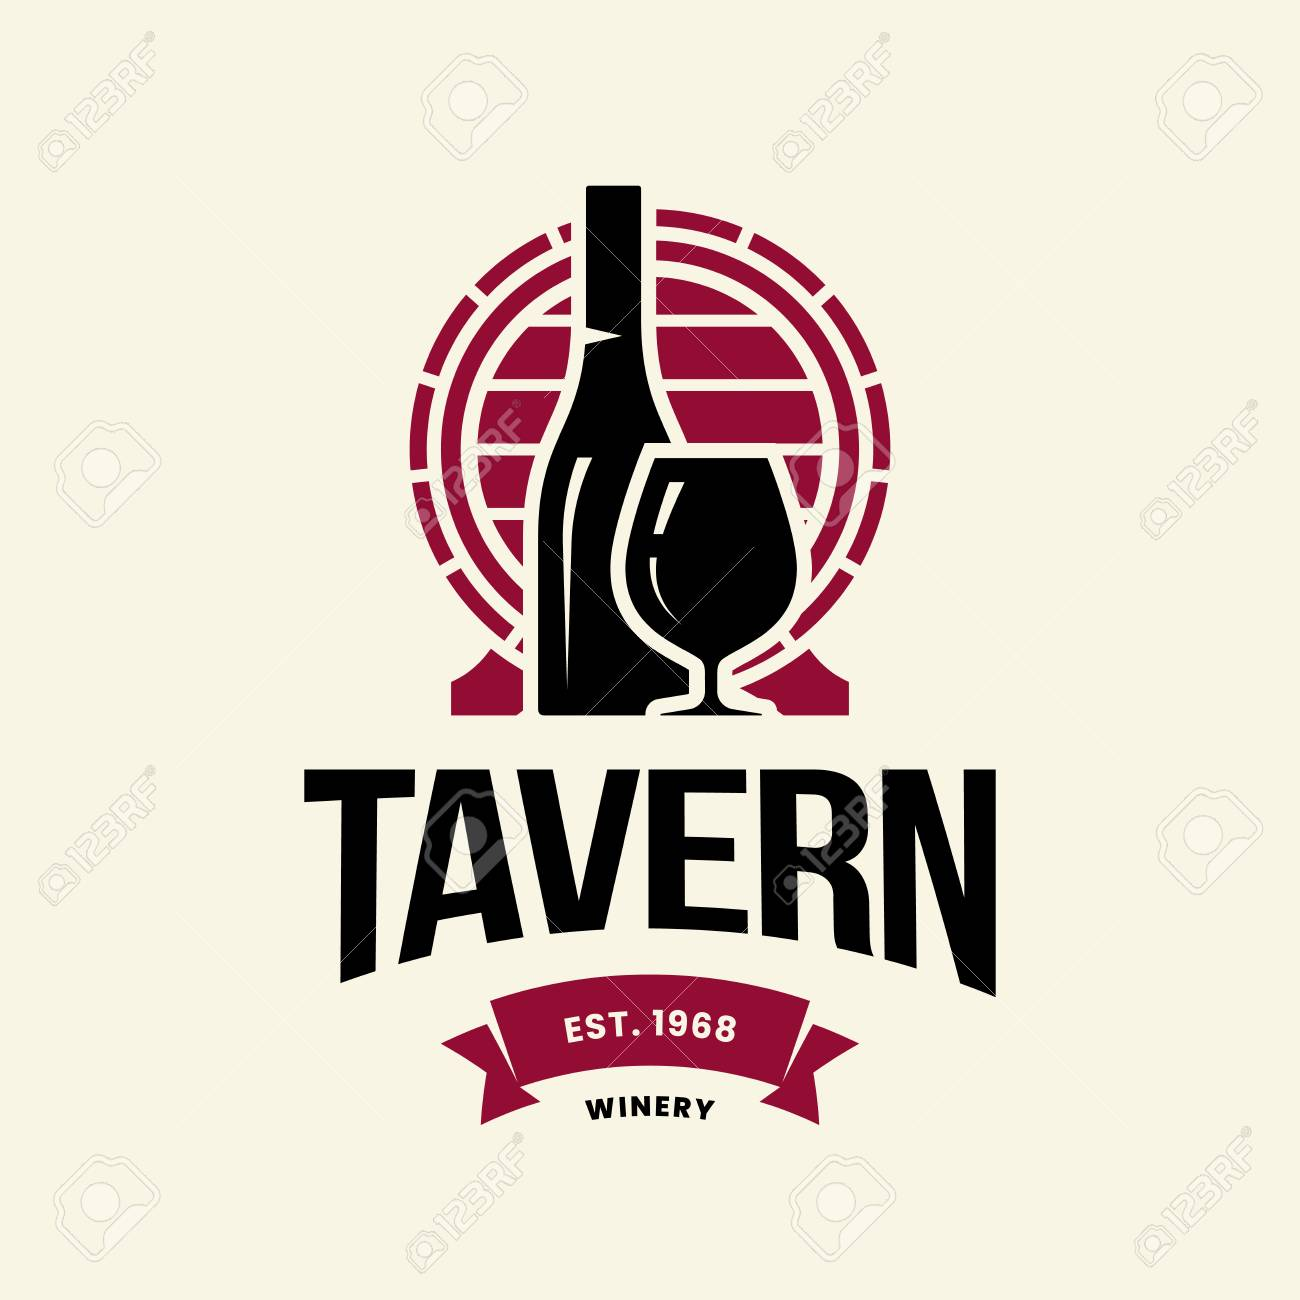 Modern wine vector logo sign for tavern, restaurant, house, shop, store, club and cellar isolated on light background. Premium quality vinery logotype illustration. Fashion brand badge design template. - 126498896